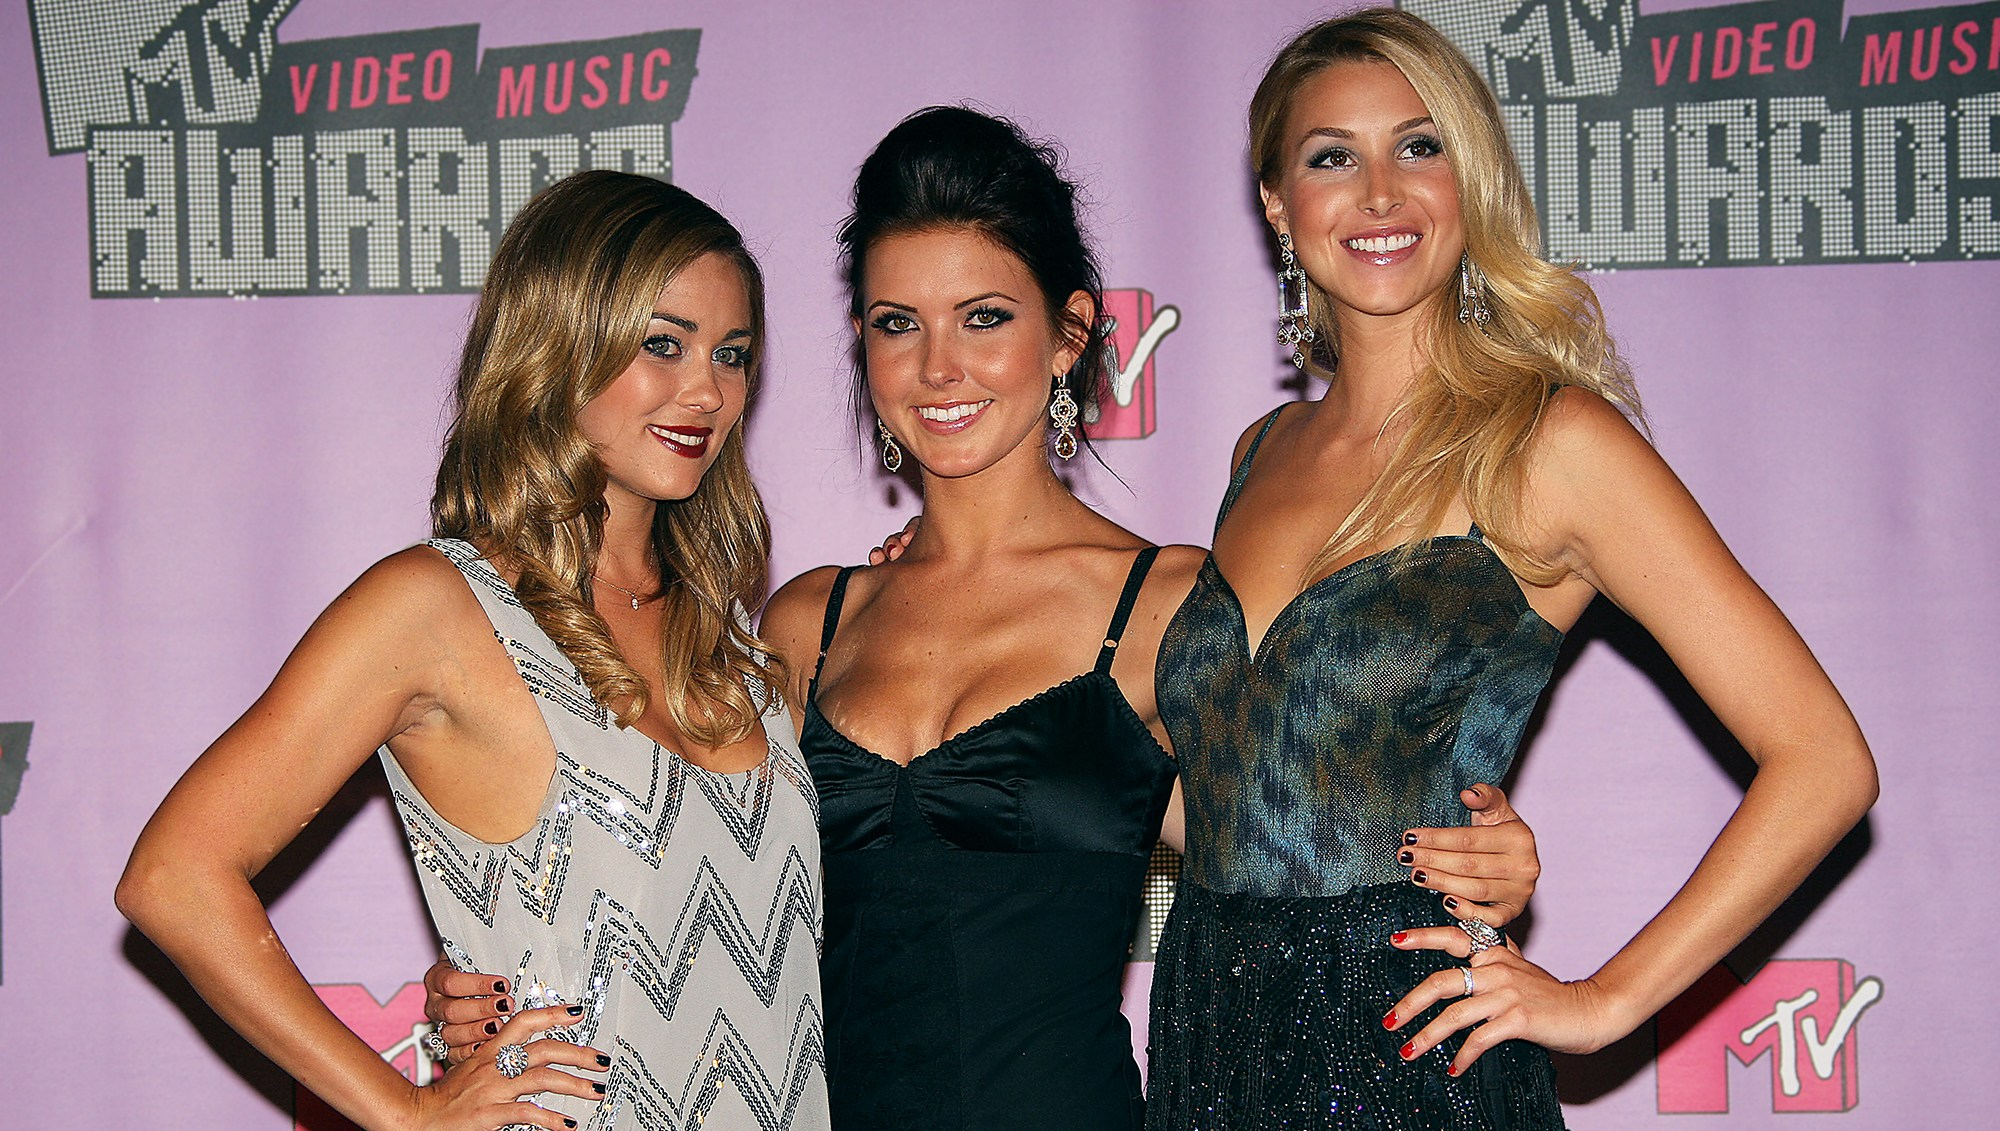 The Hills Reuniting at VMAs